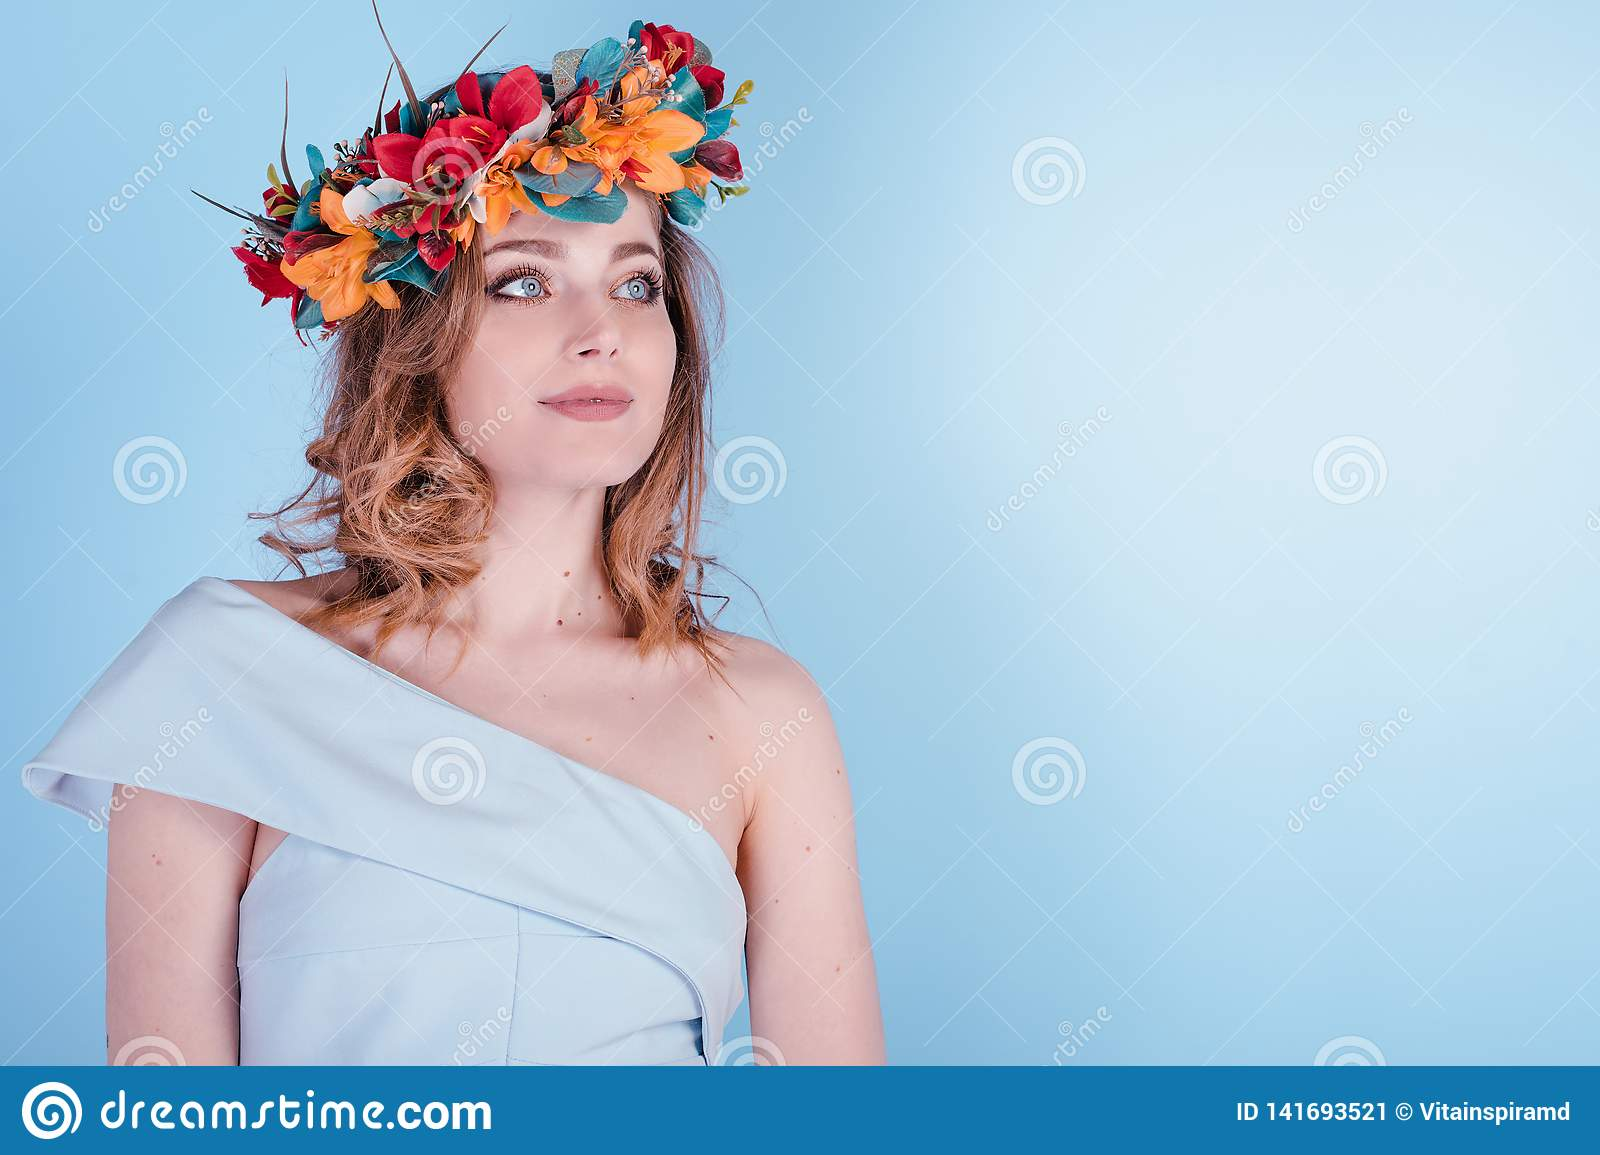 Beautiful Blonde Young Woman with Flowers Wreath, Long Curly Hair and Makeup on Blue Background